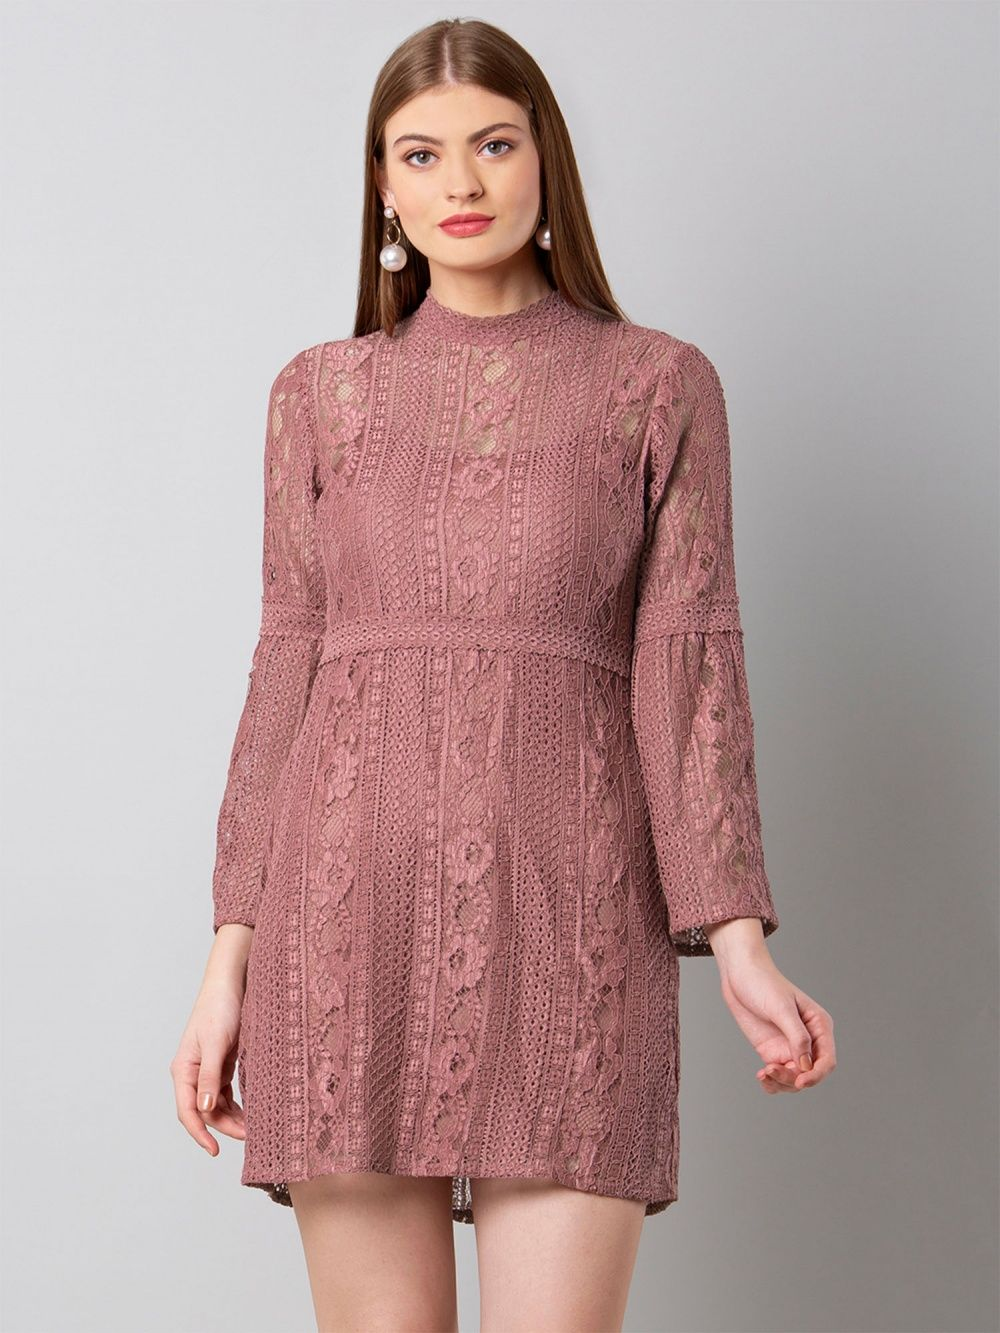 2c93f8cb70b Faballey Dresses   Buy Faballey Dusty Pink Bell Sleeved Lace Dress ...